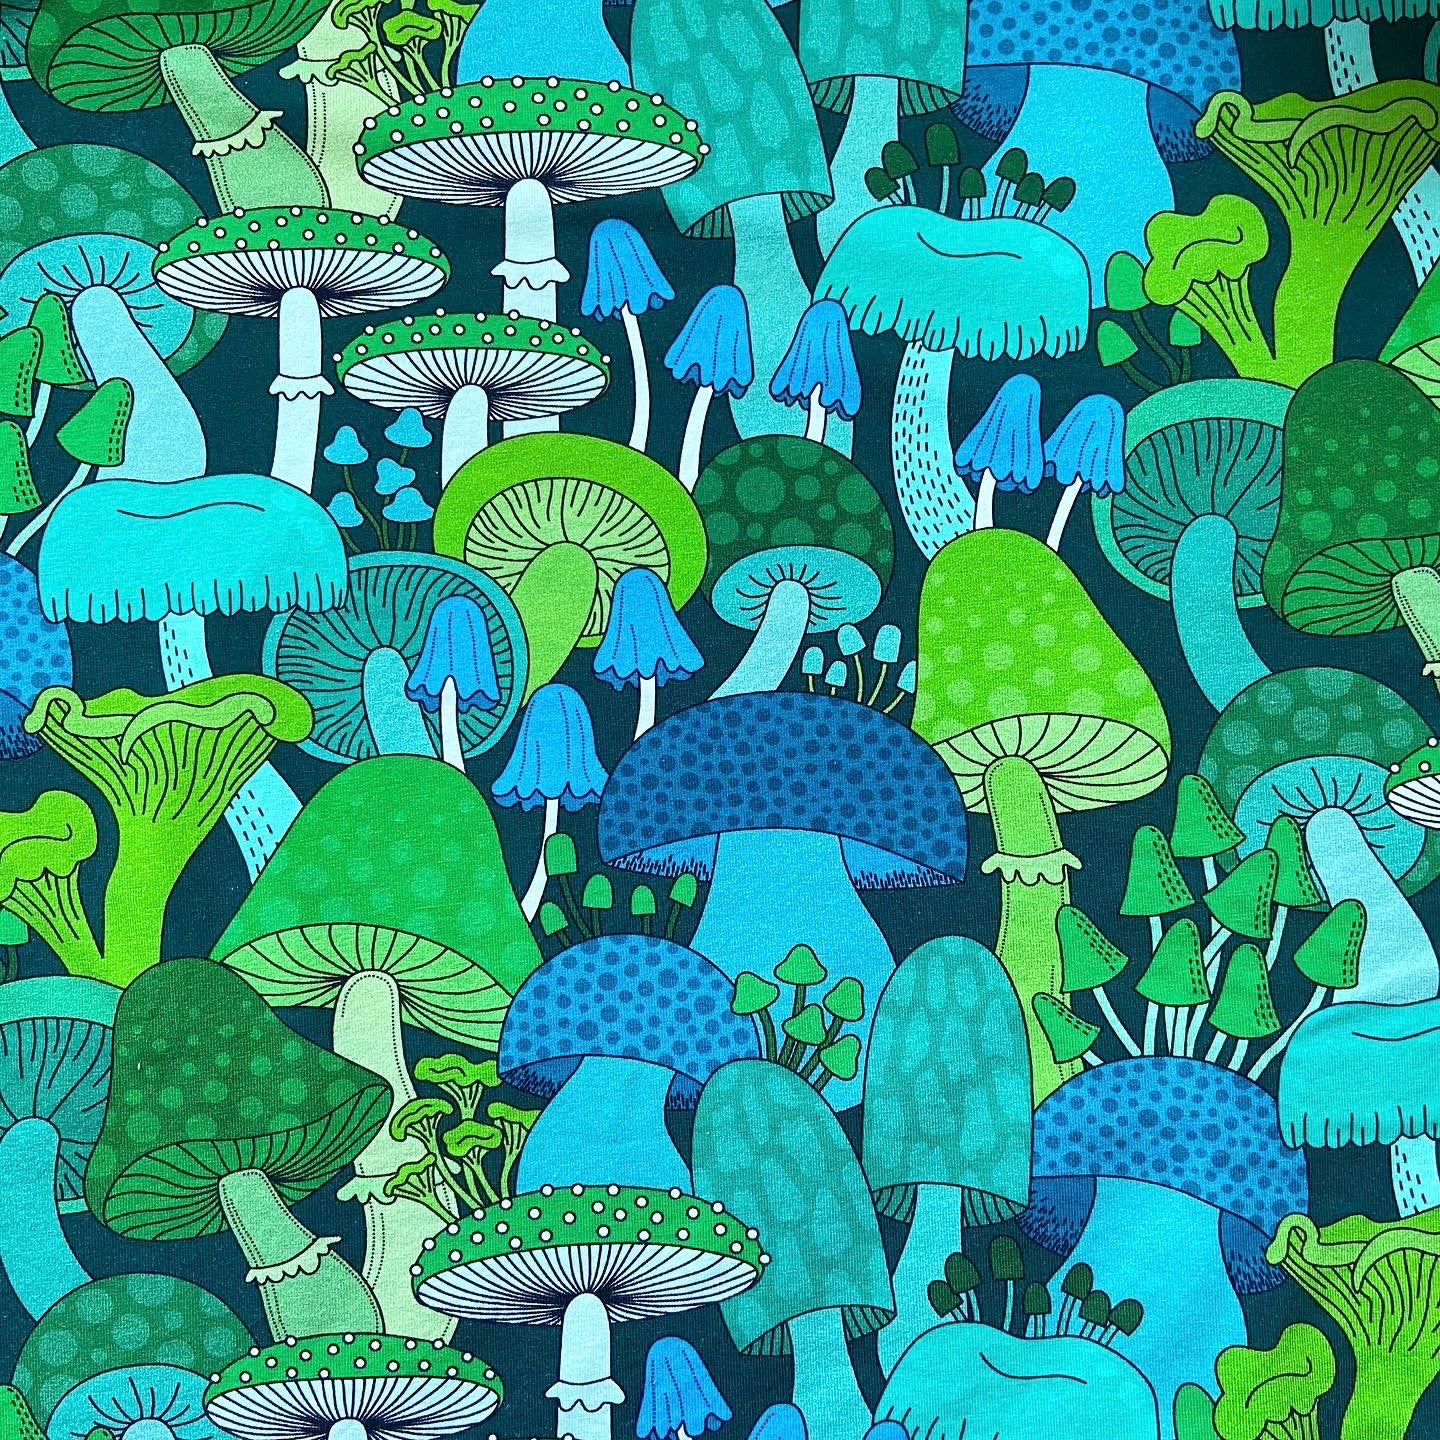 Cloth Pad - Green Mushrooms